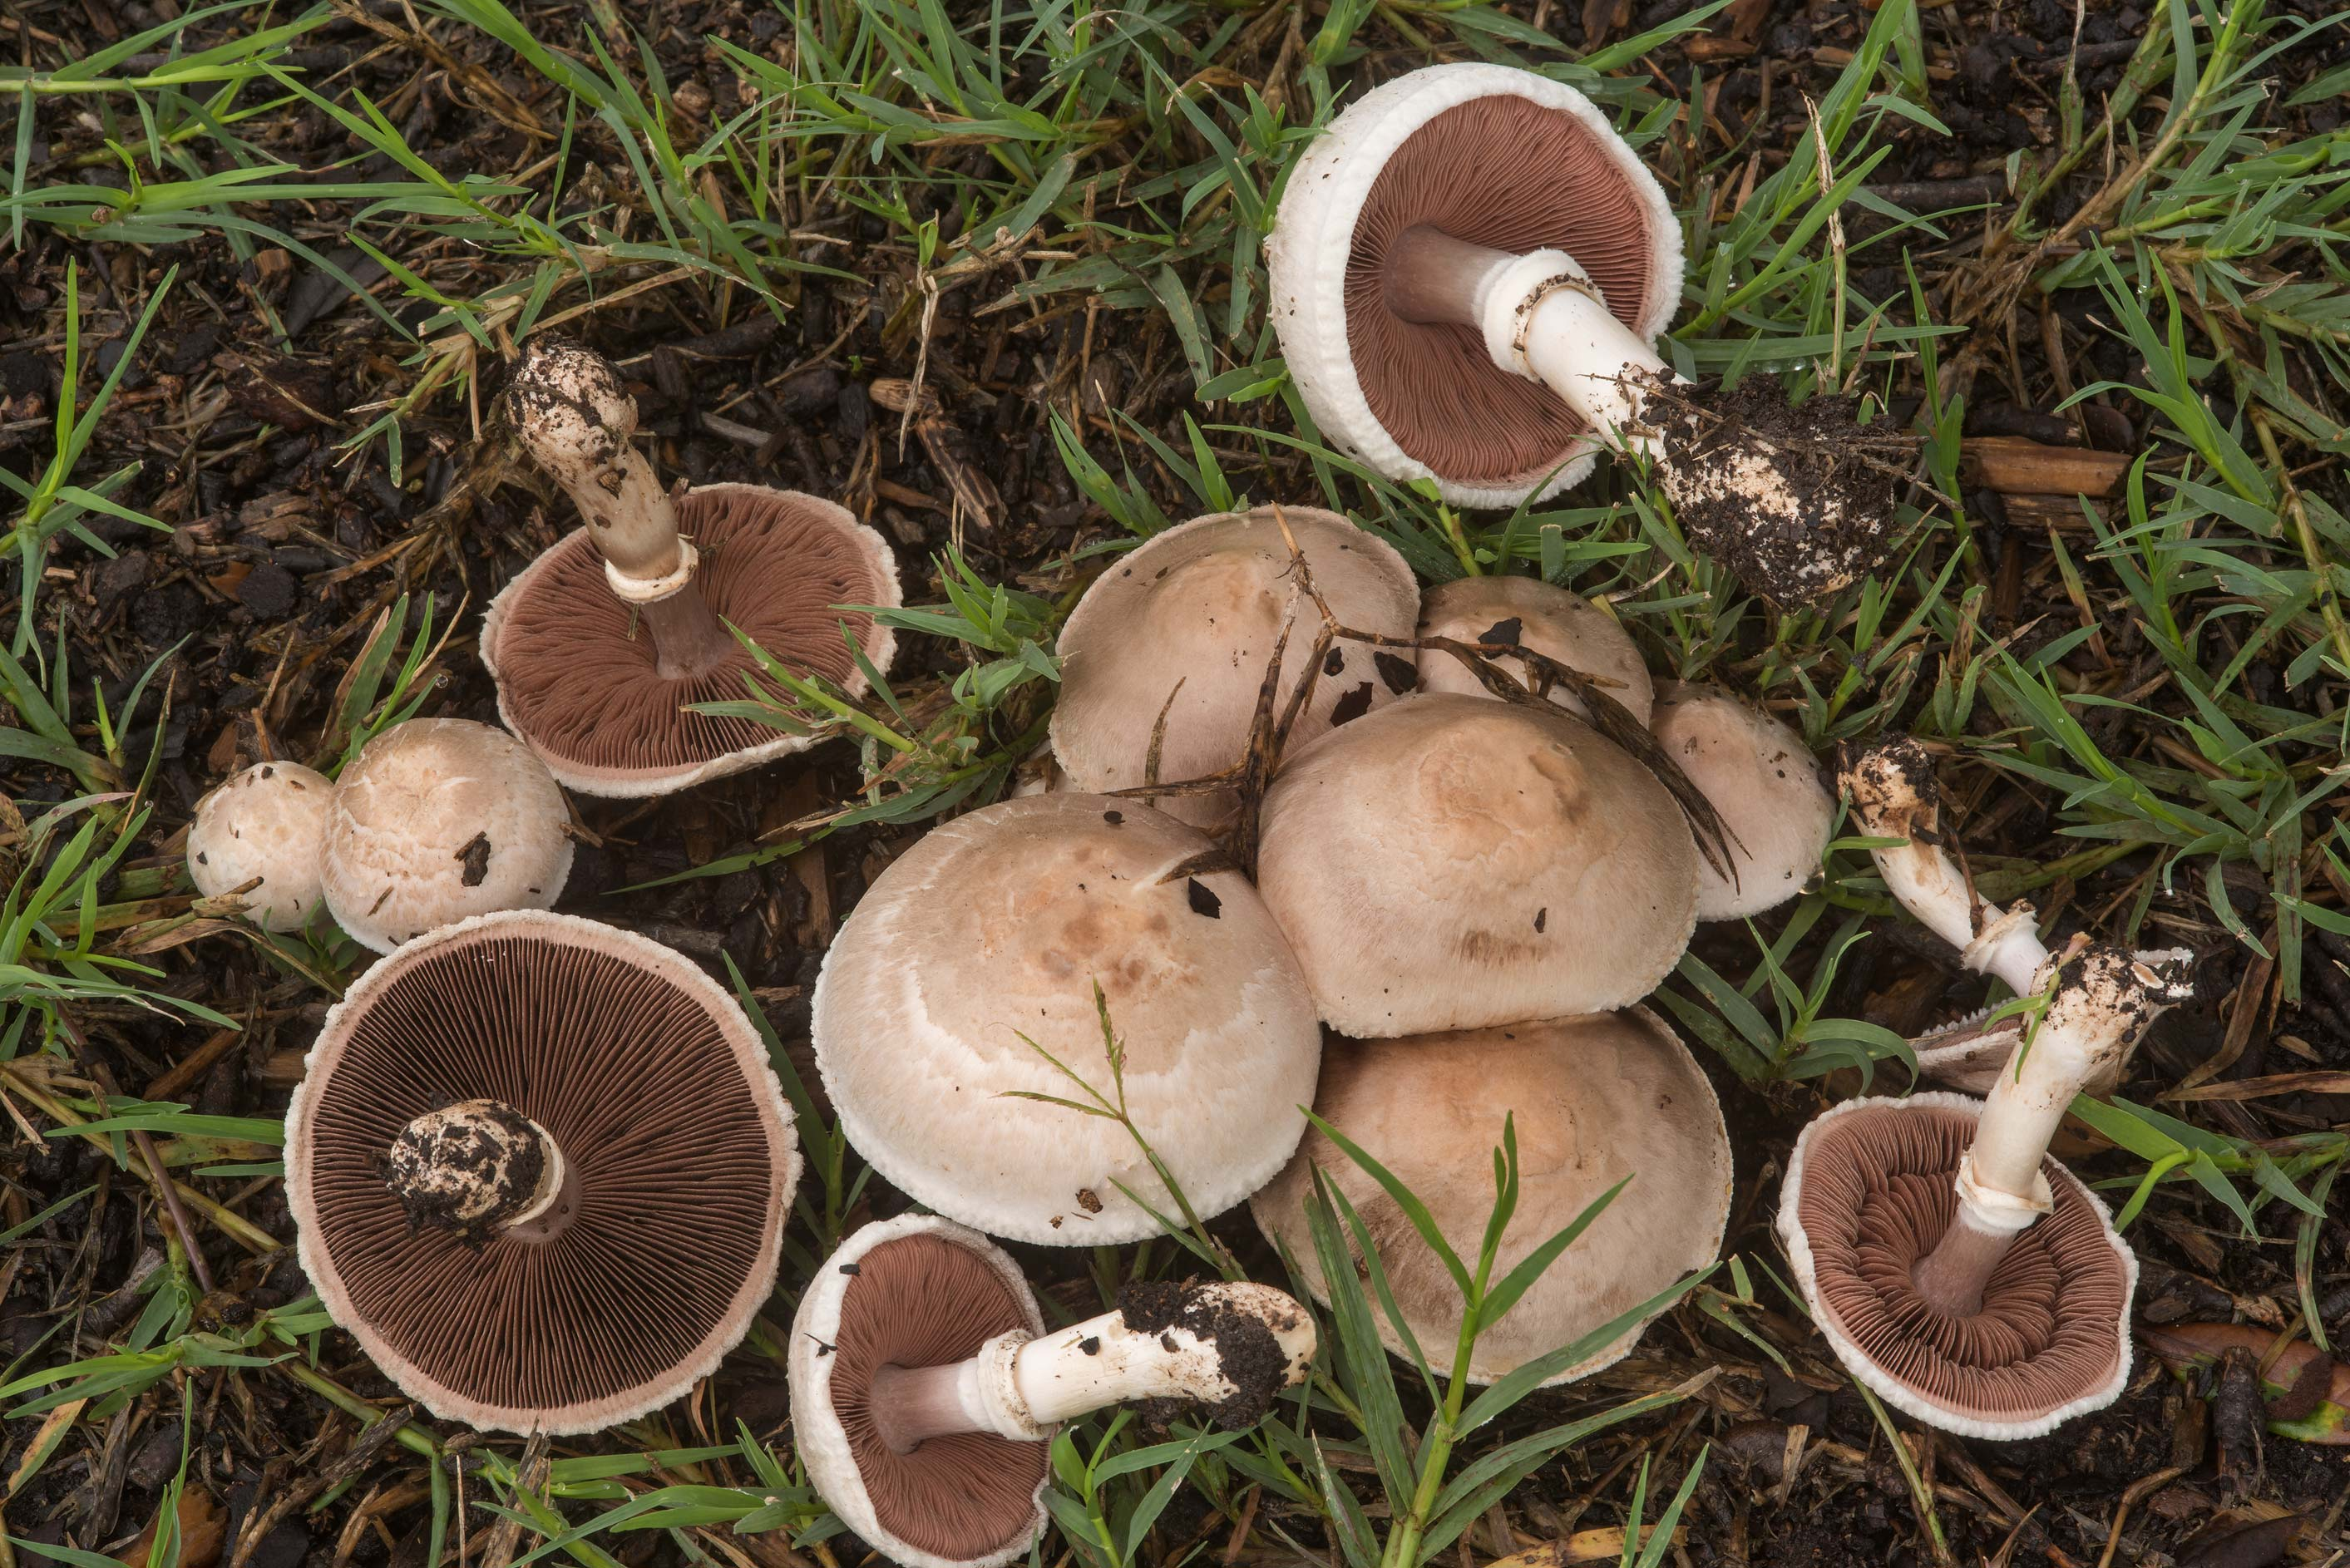 Group of Agaricus mushrooms on a lawn on campus...M University. College Station, Texas